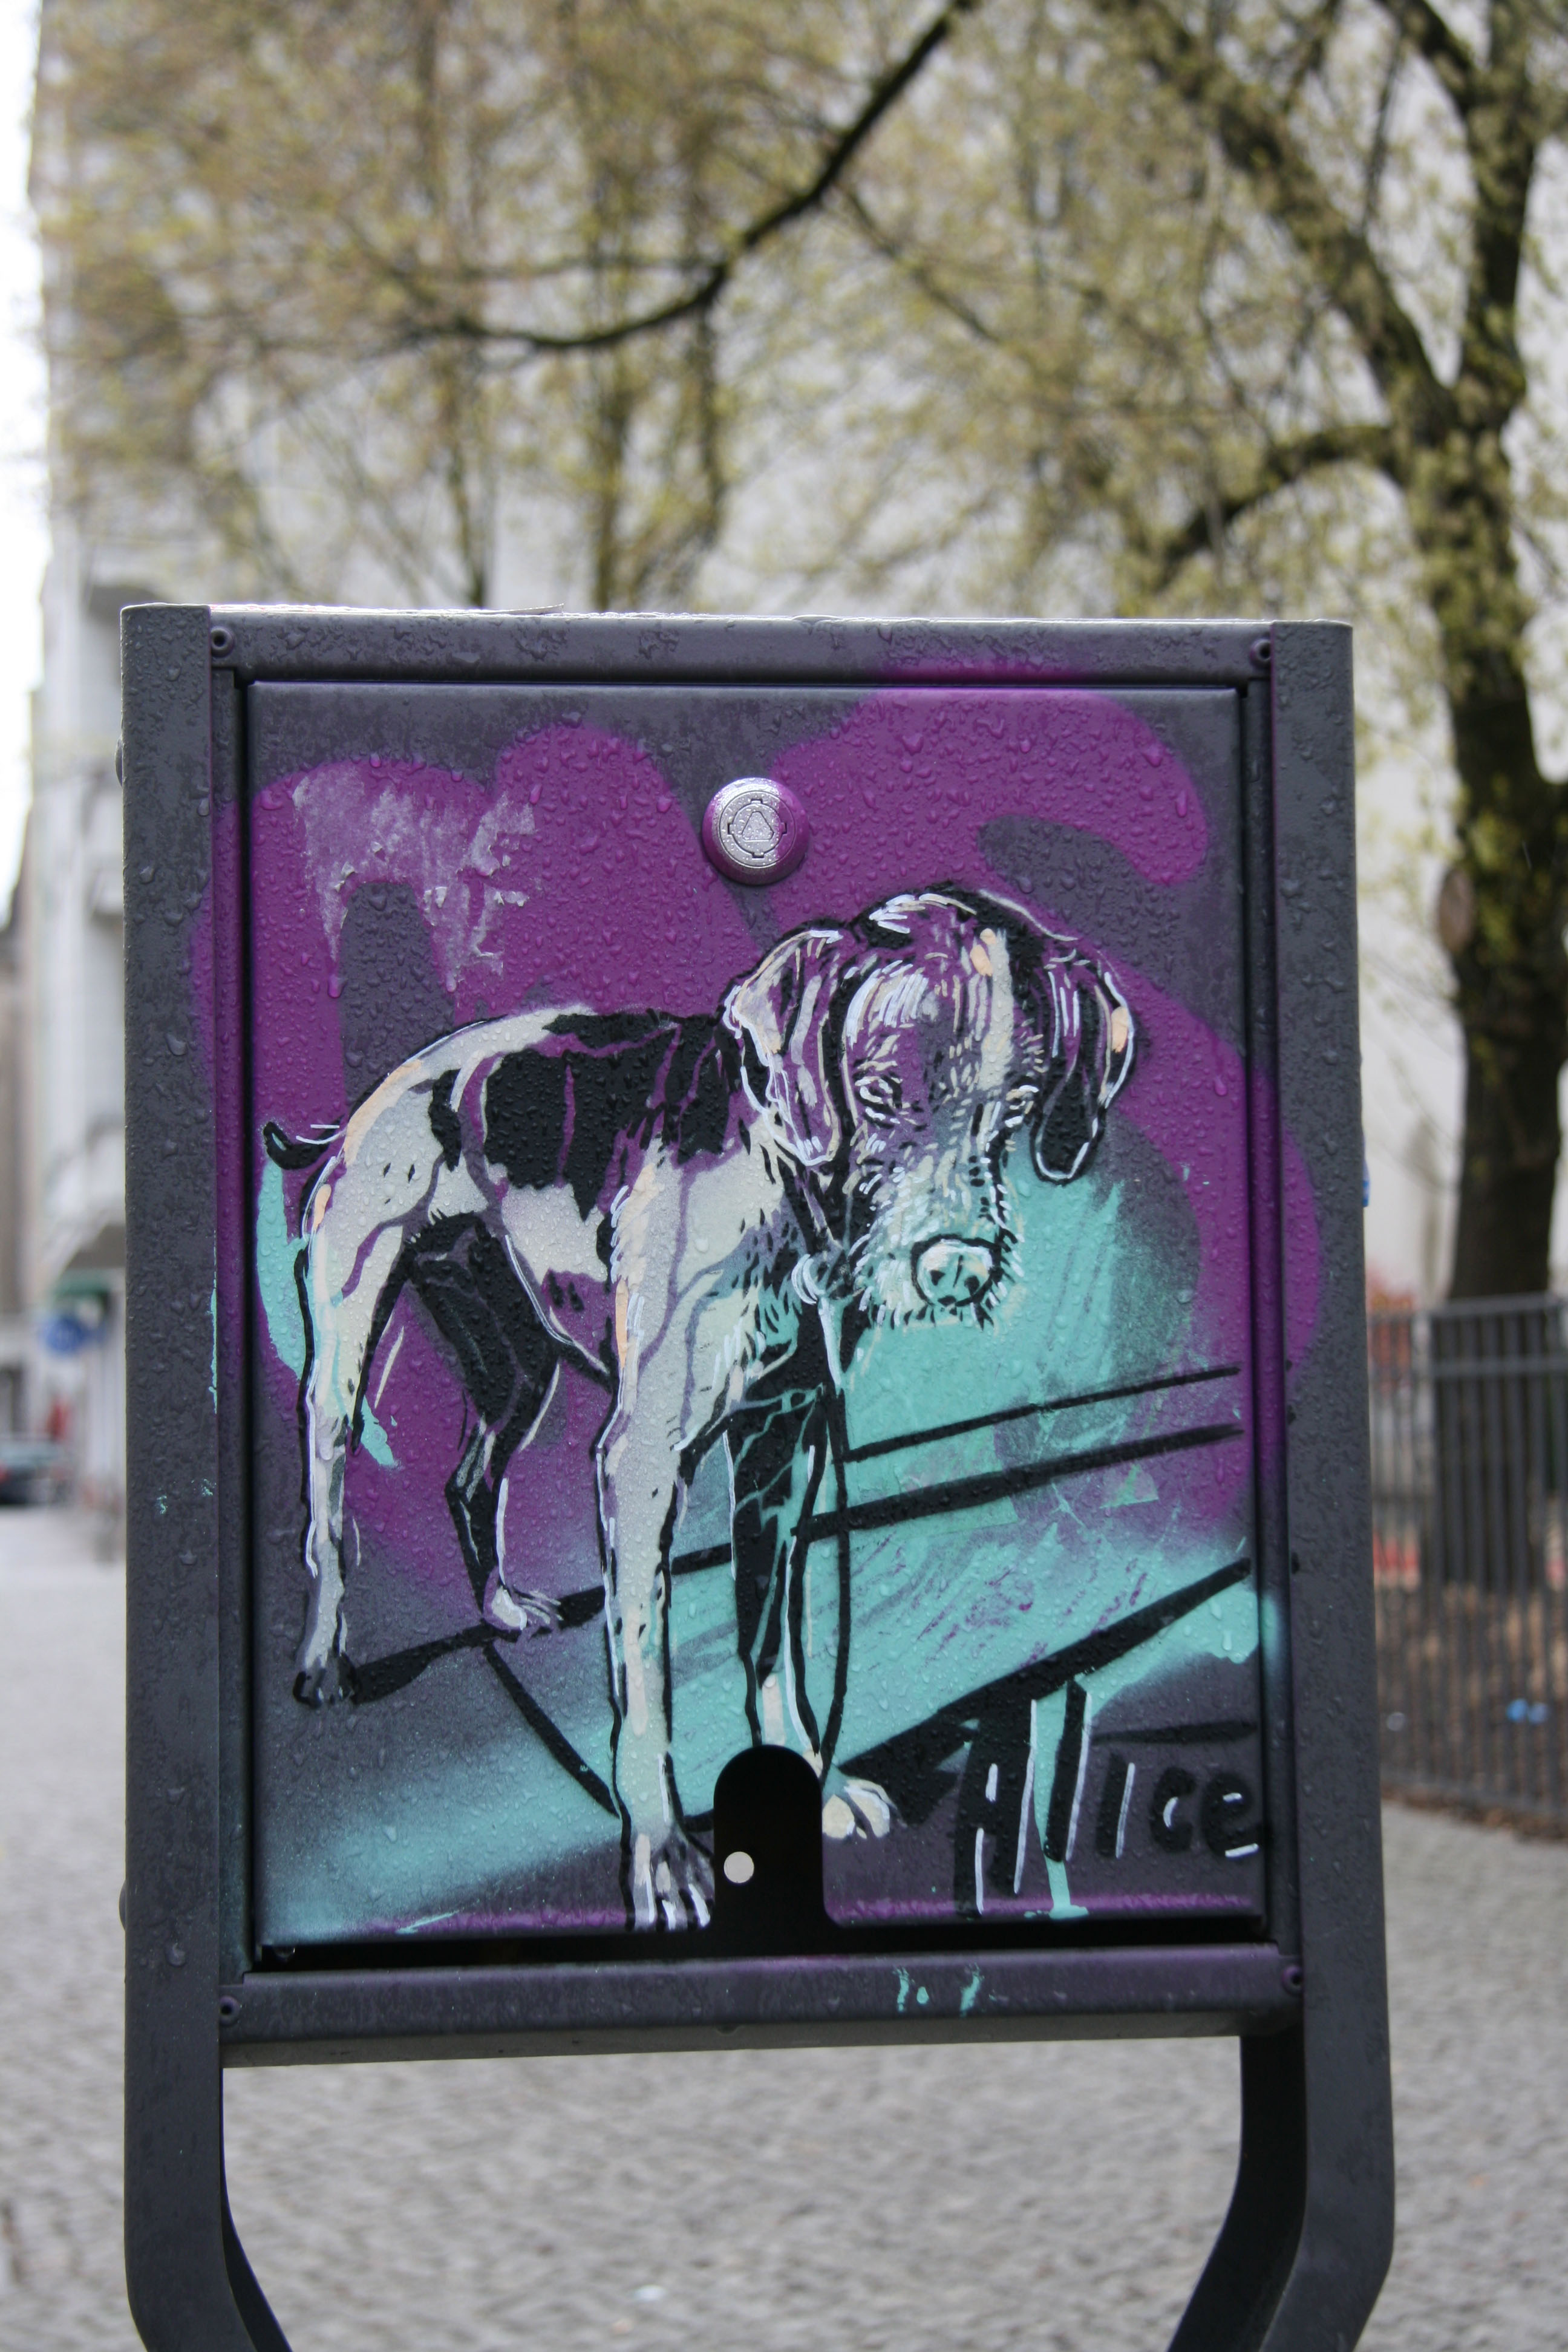 How Much Is That Doggy?: Street Art by AliCé (Alice Pasquini) in Berlin